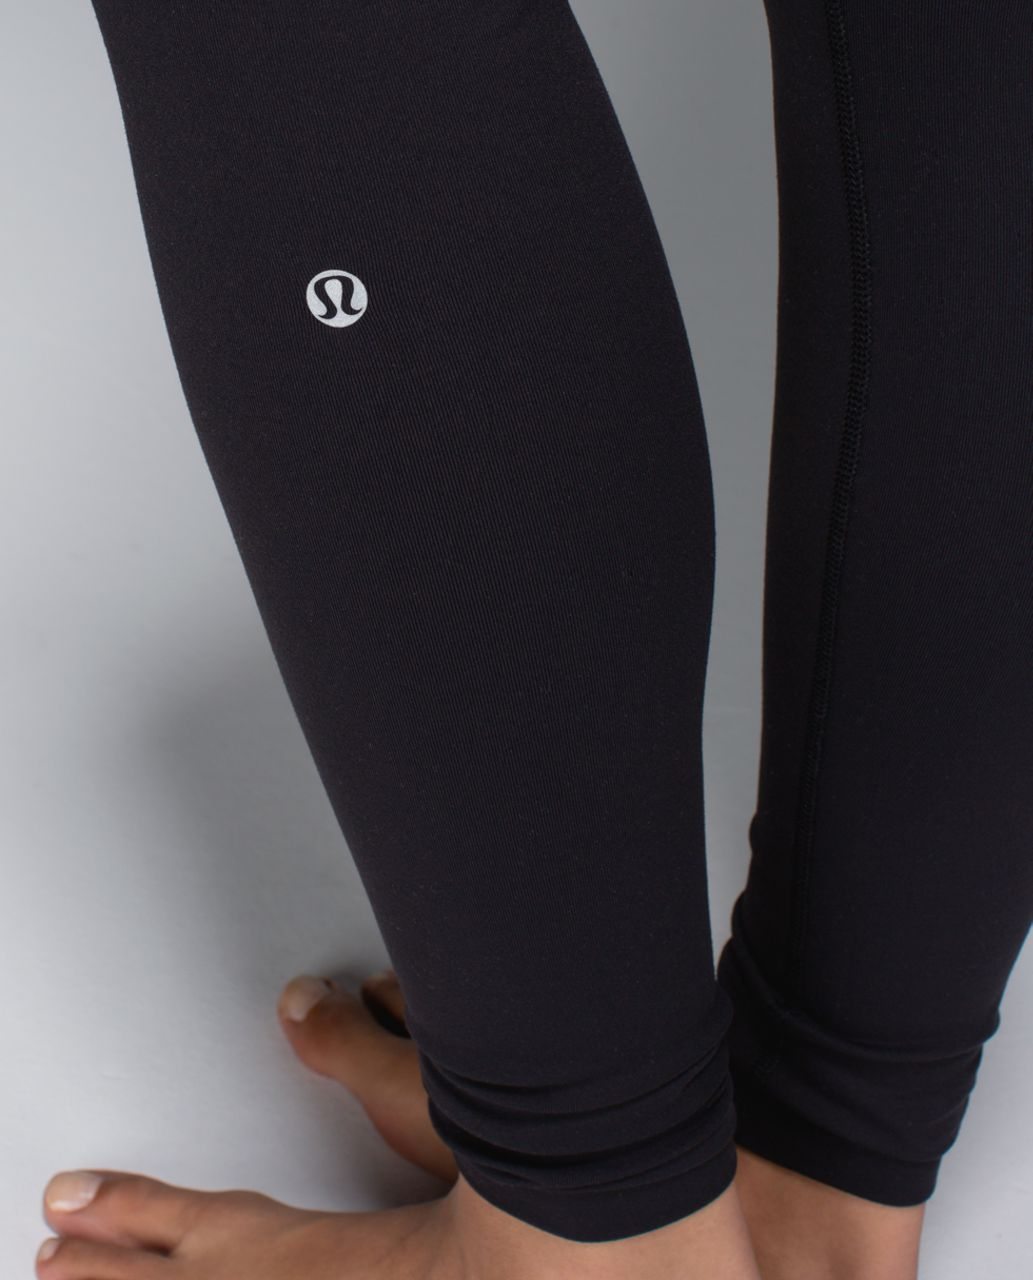 Lululemon Wunder Under Pant *Full-On Luon - Black / Su14 Quilt 15